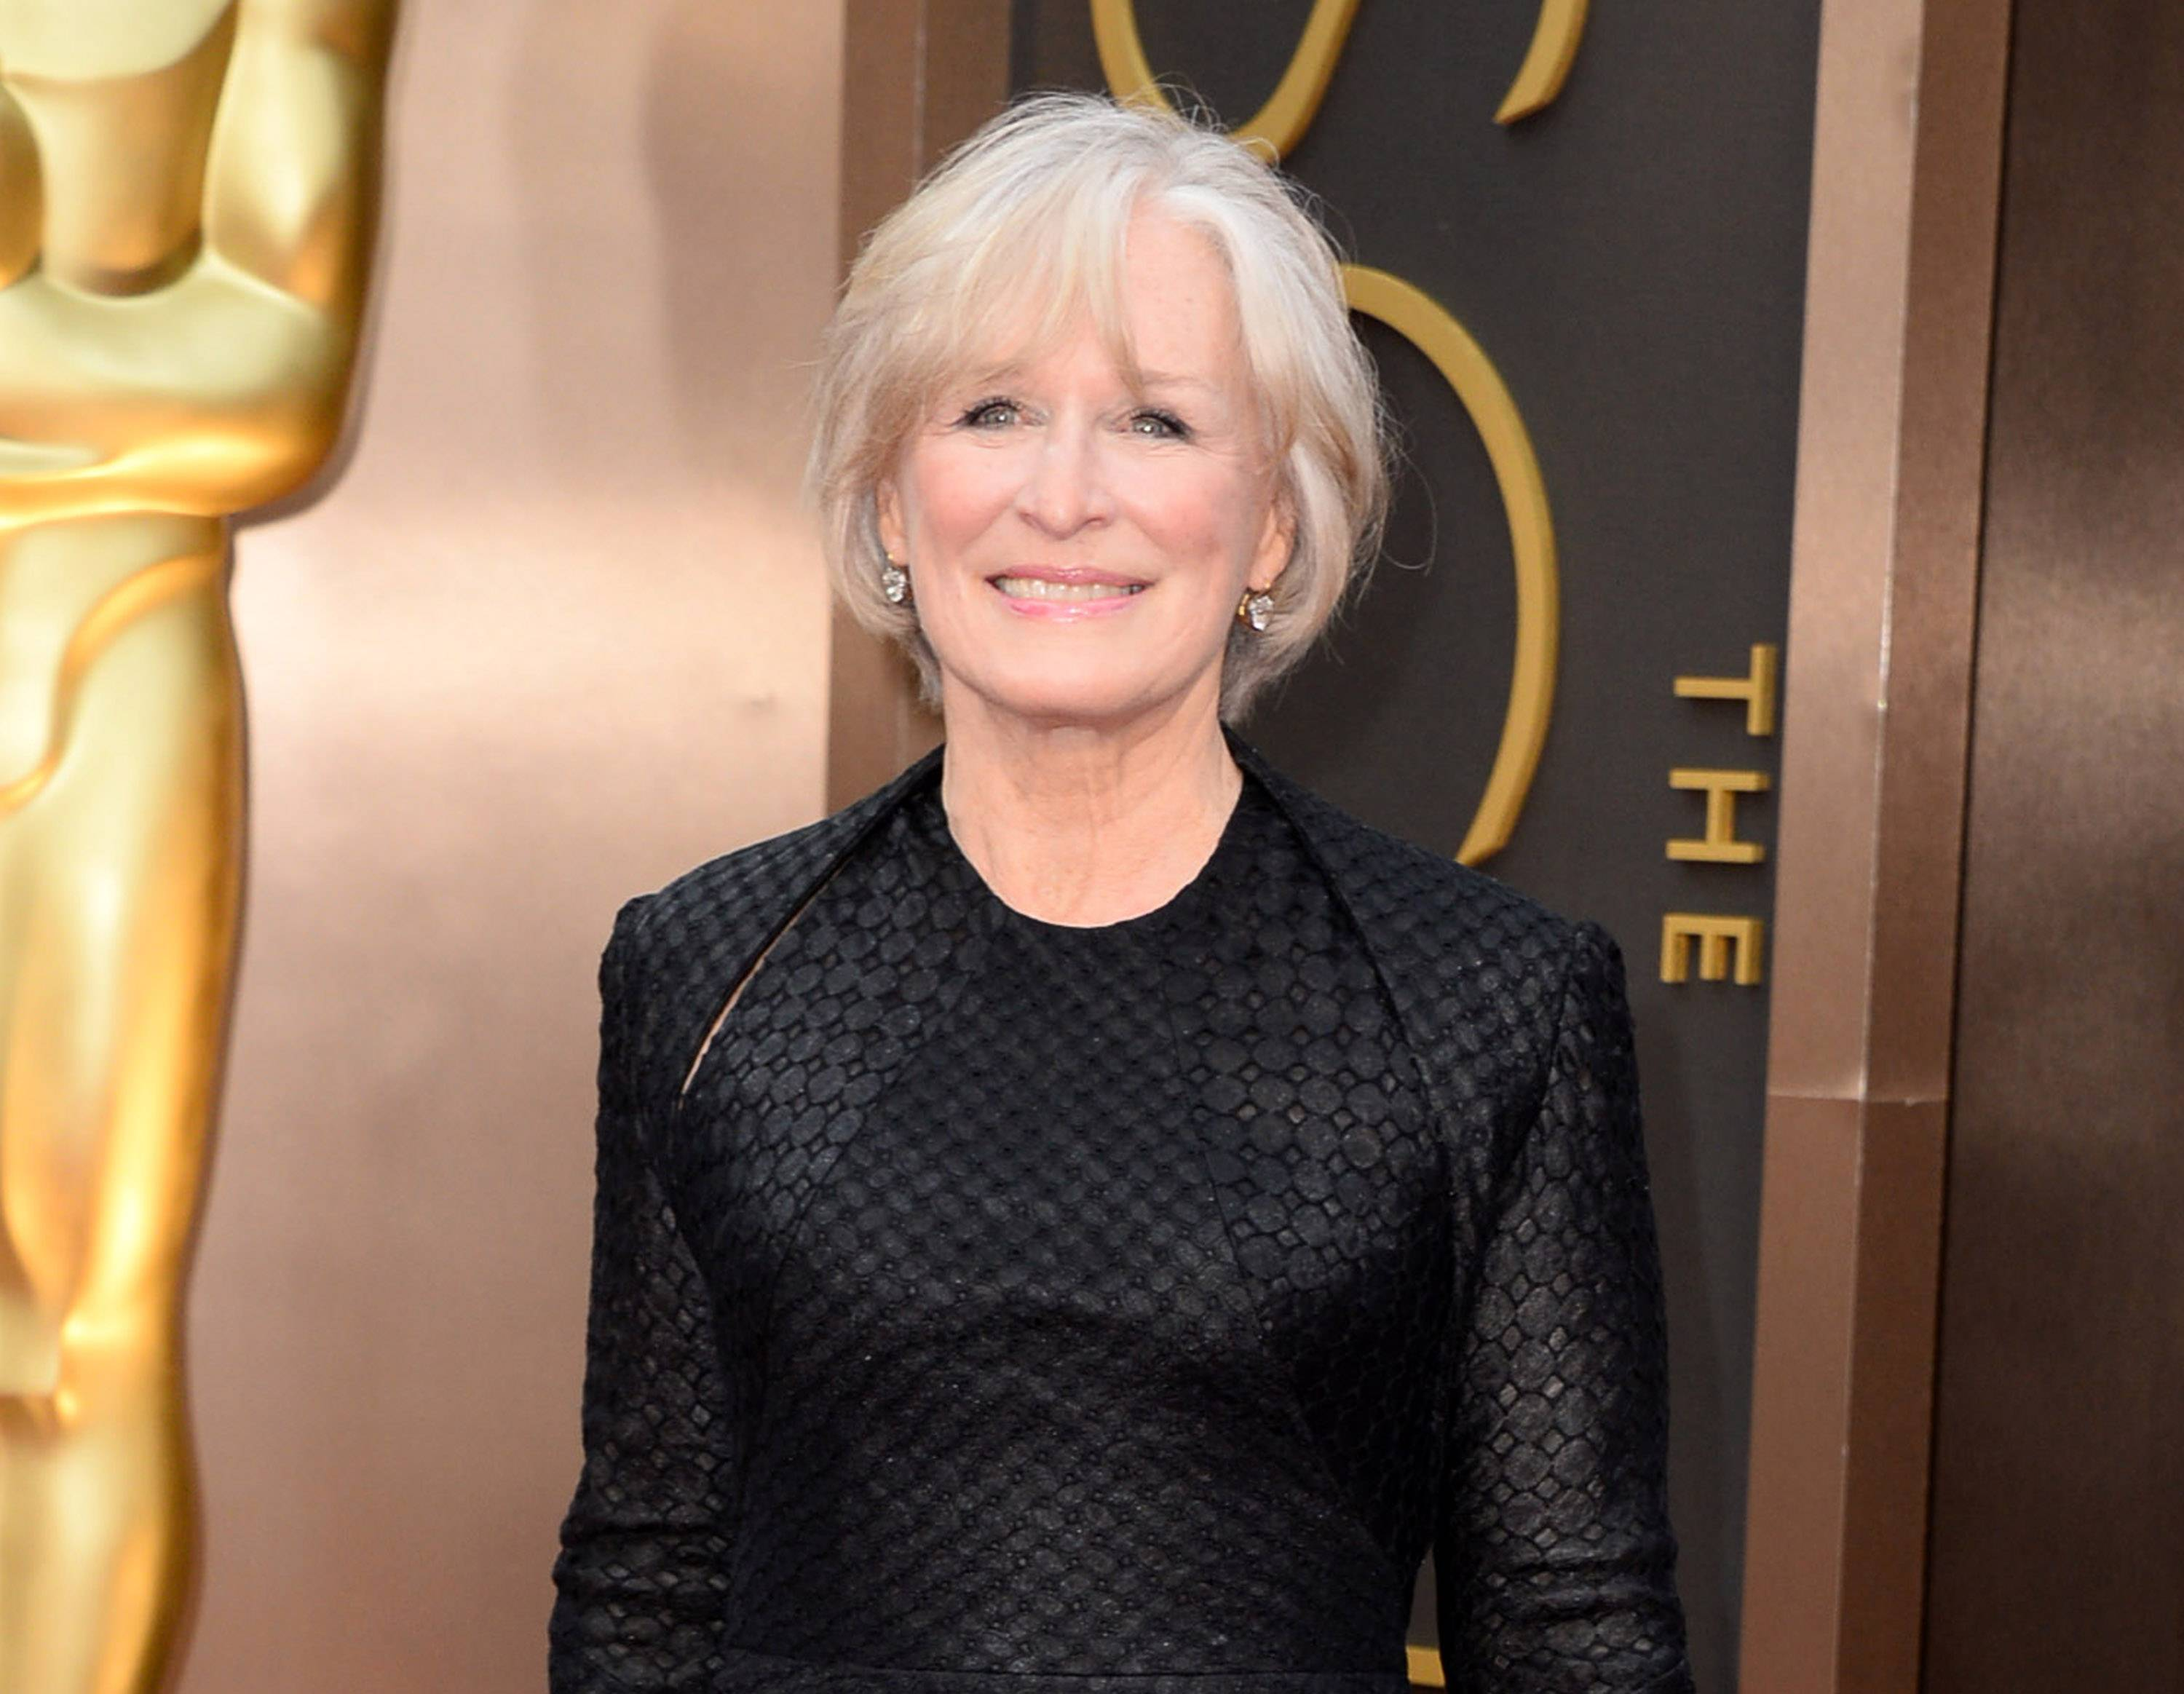 "Glenn Close will star with John Lithgow in a Broadway revival of Edward Albee's ""A Delicate Balance"" this fall. It will be directed by Pam MacKinnon, with previews beginning Oct. 20."